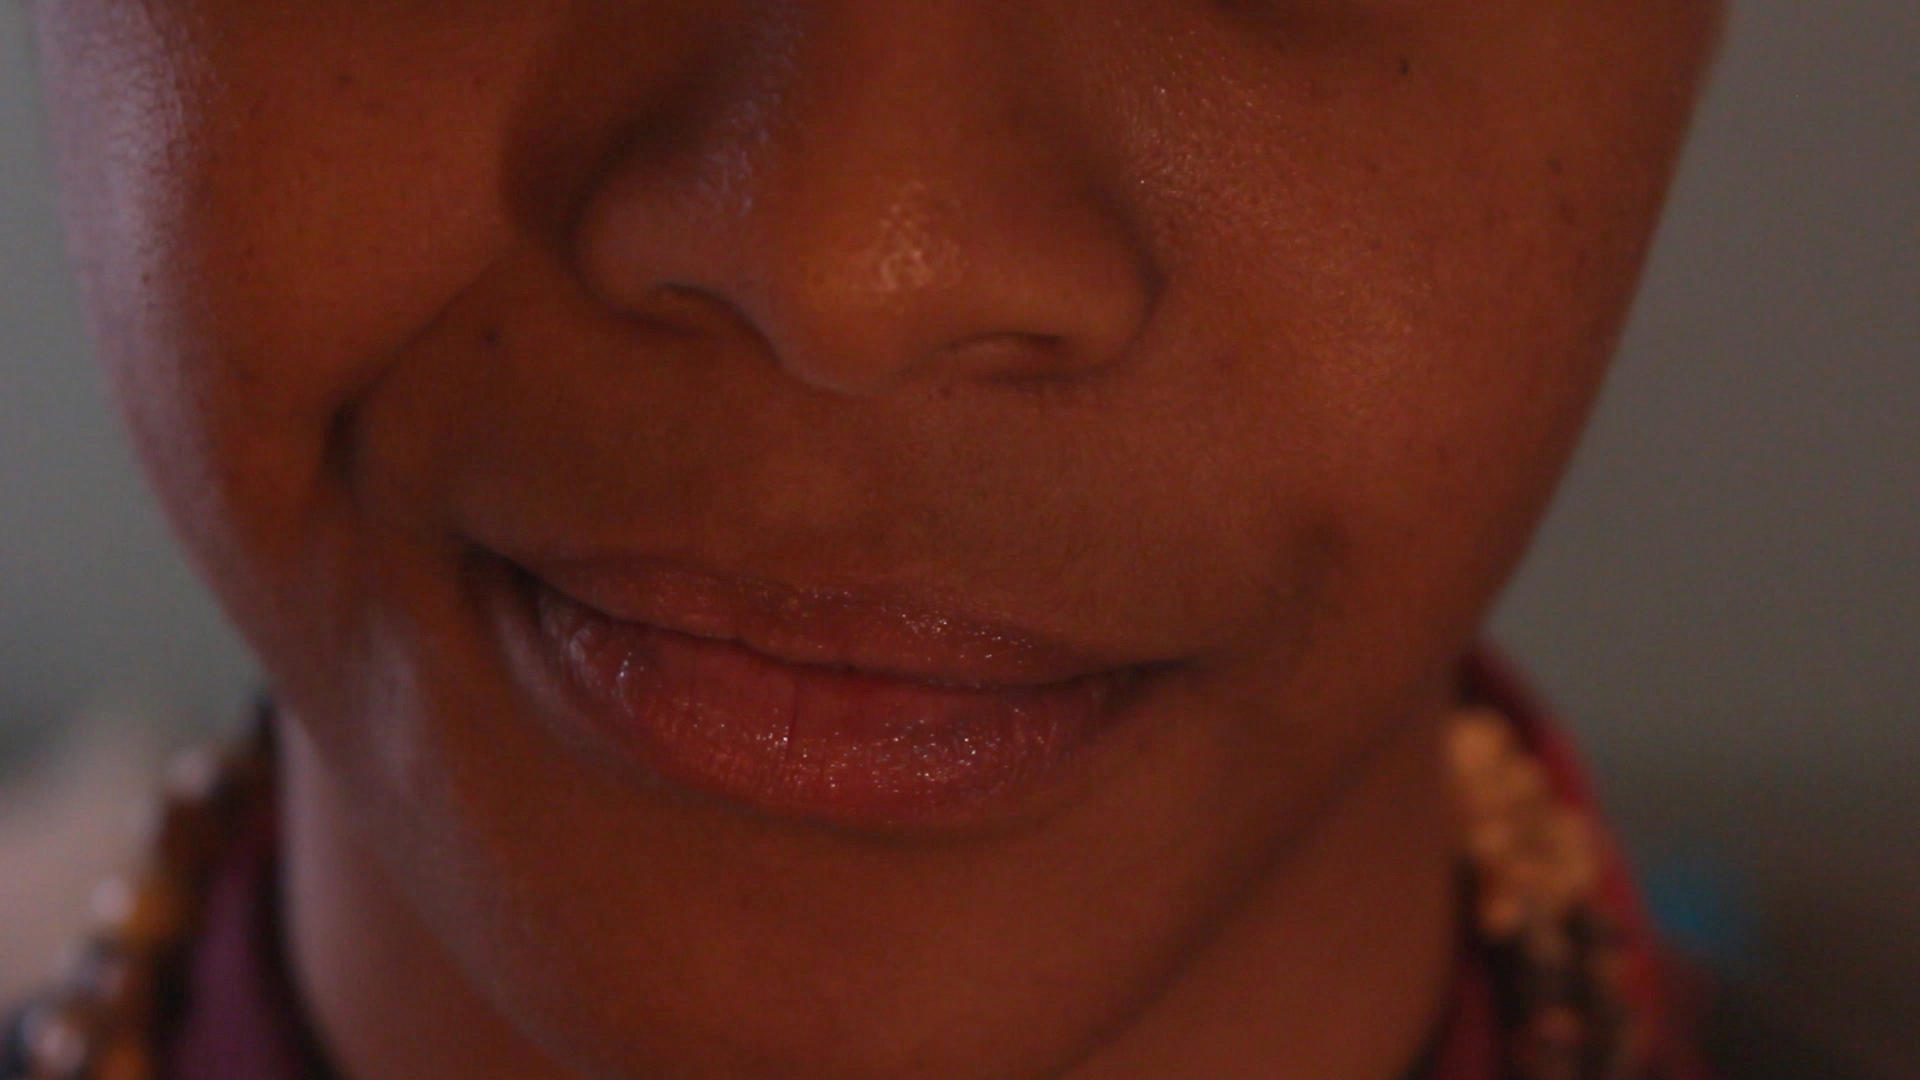 In Her Eyes(2015) - Producer, Director & EditorJay GashQueer Women of Color Film Festival (2015)Wicked Queer Boston LGBT Film Festival (2016)